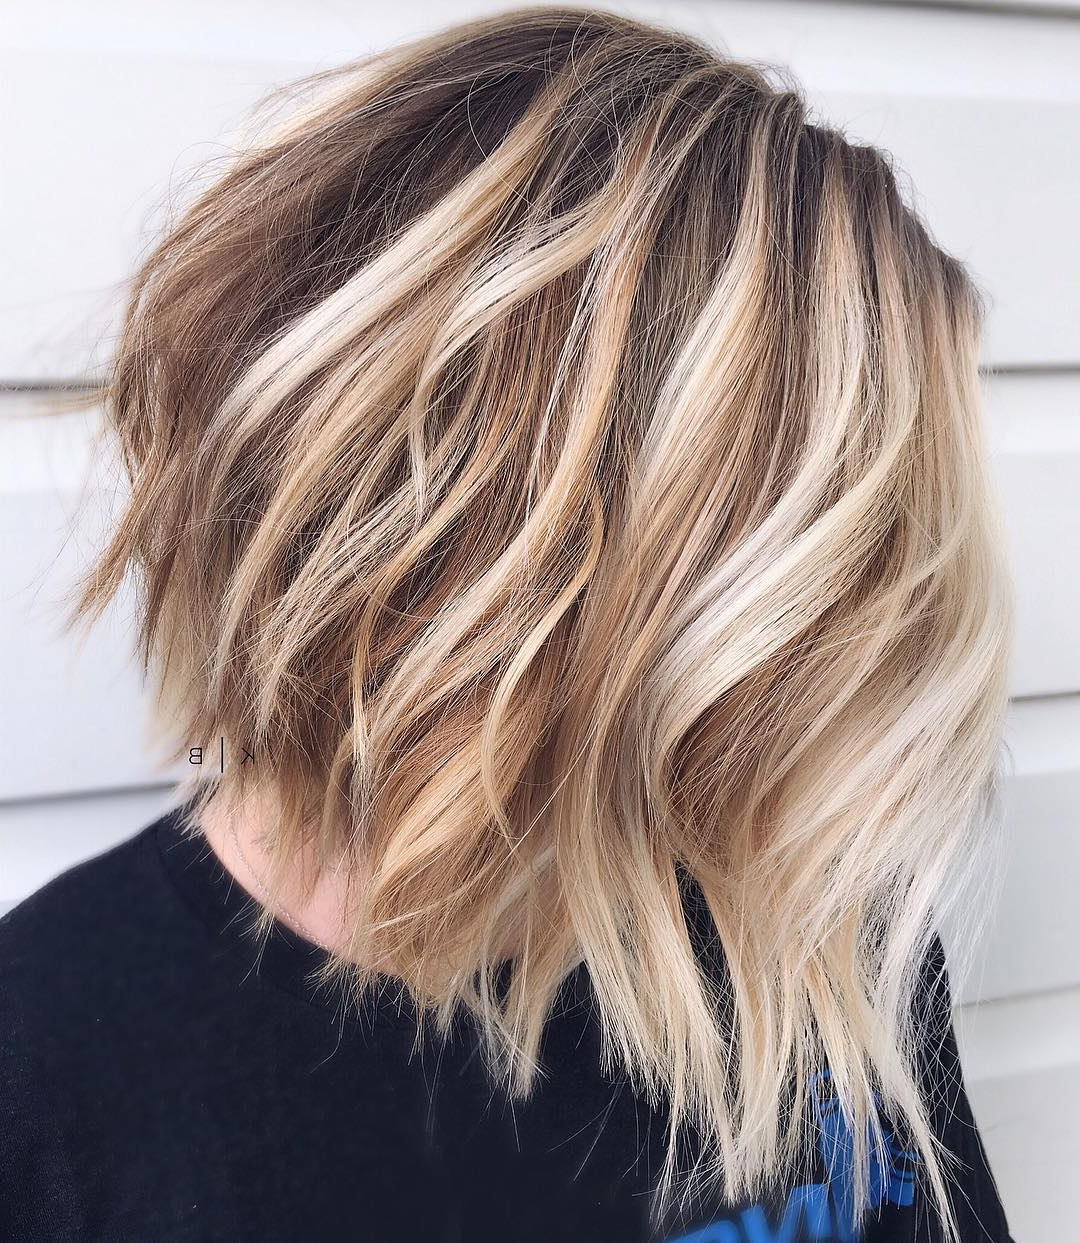 Find Your Best Bob Haircut For 2019 Throughout Disconnected Shaggy Brunette Bob Hairstyles (View 16 of 20)